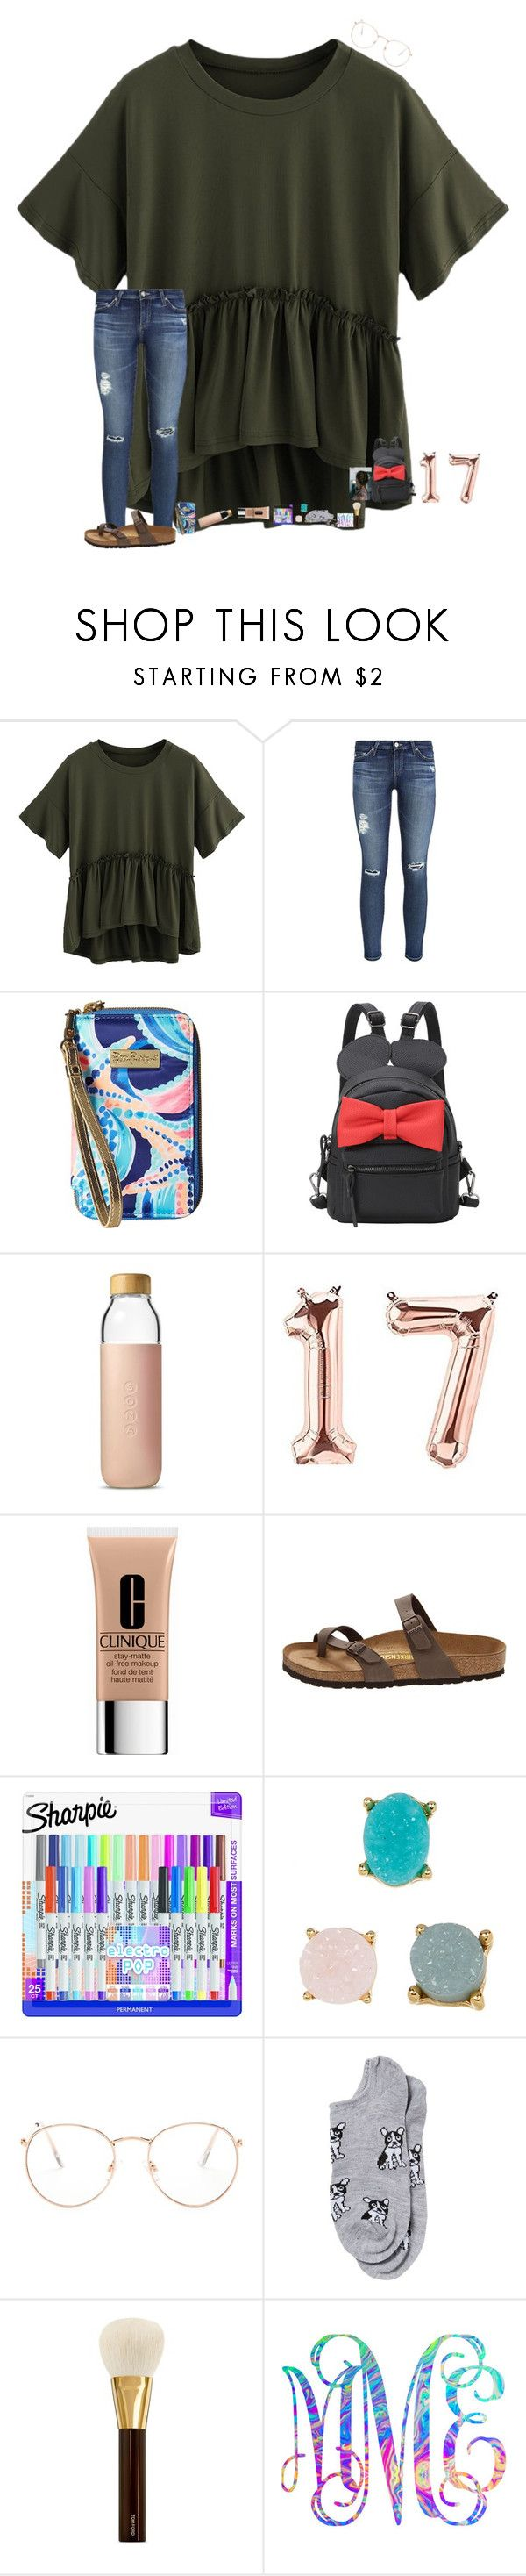 •run wild• by mackenzielacy814 on Polyvore featuring AG Adriano Goldschmied, Lilly Pulitzer, Soma, Clinique, Birkenstock, BaubleBar, Glance Eyewear, Charlotte Russe, E   J and Tom Ford